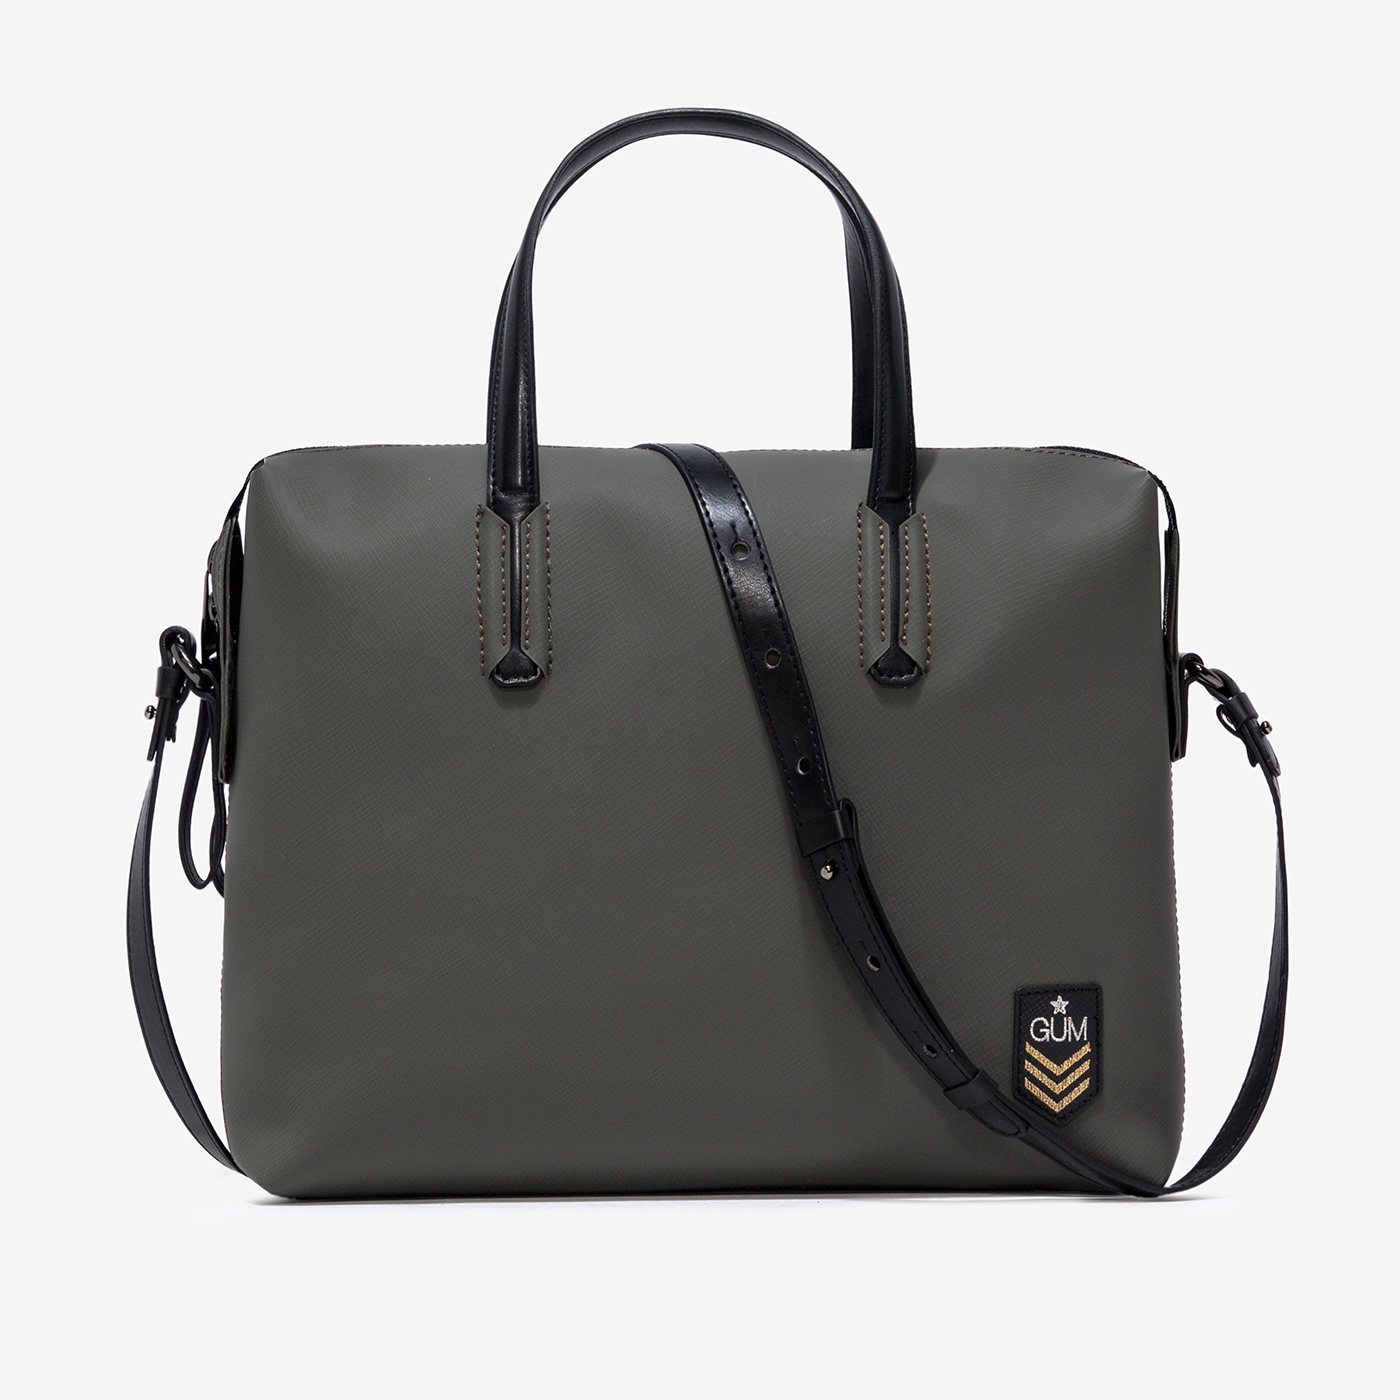 GUM: BORSA BUSINESS FANTASIA MILITARY